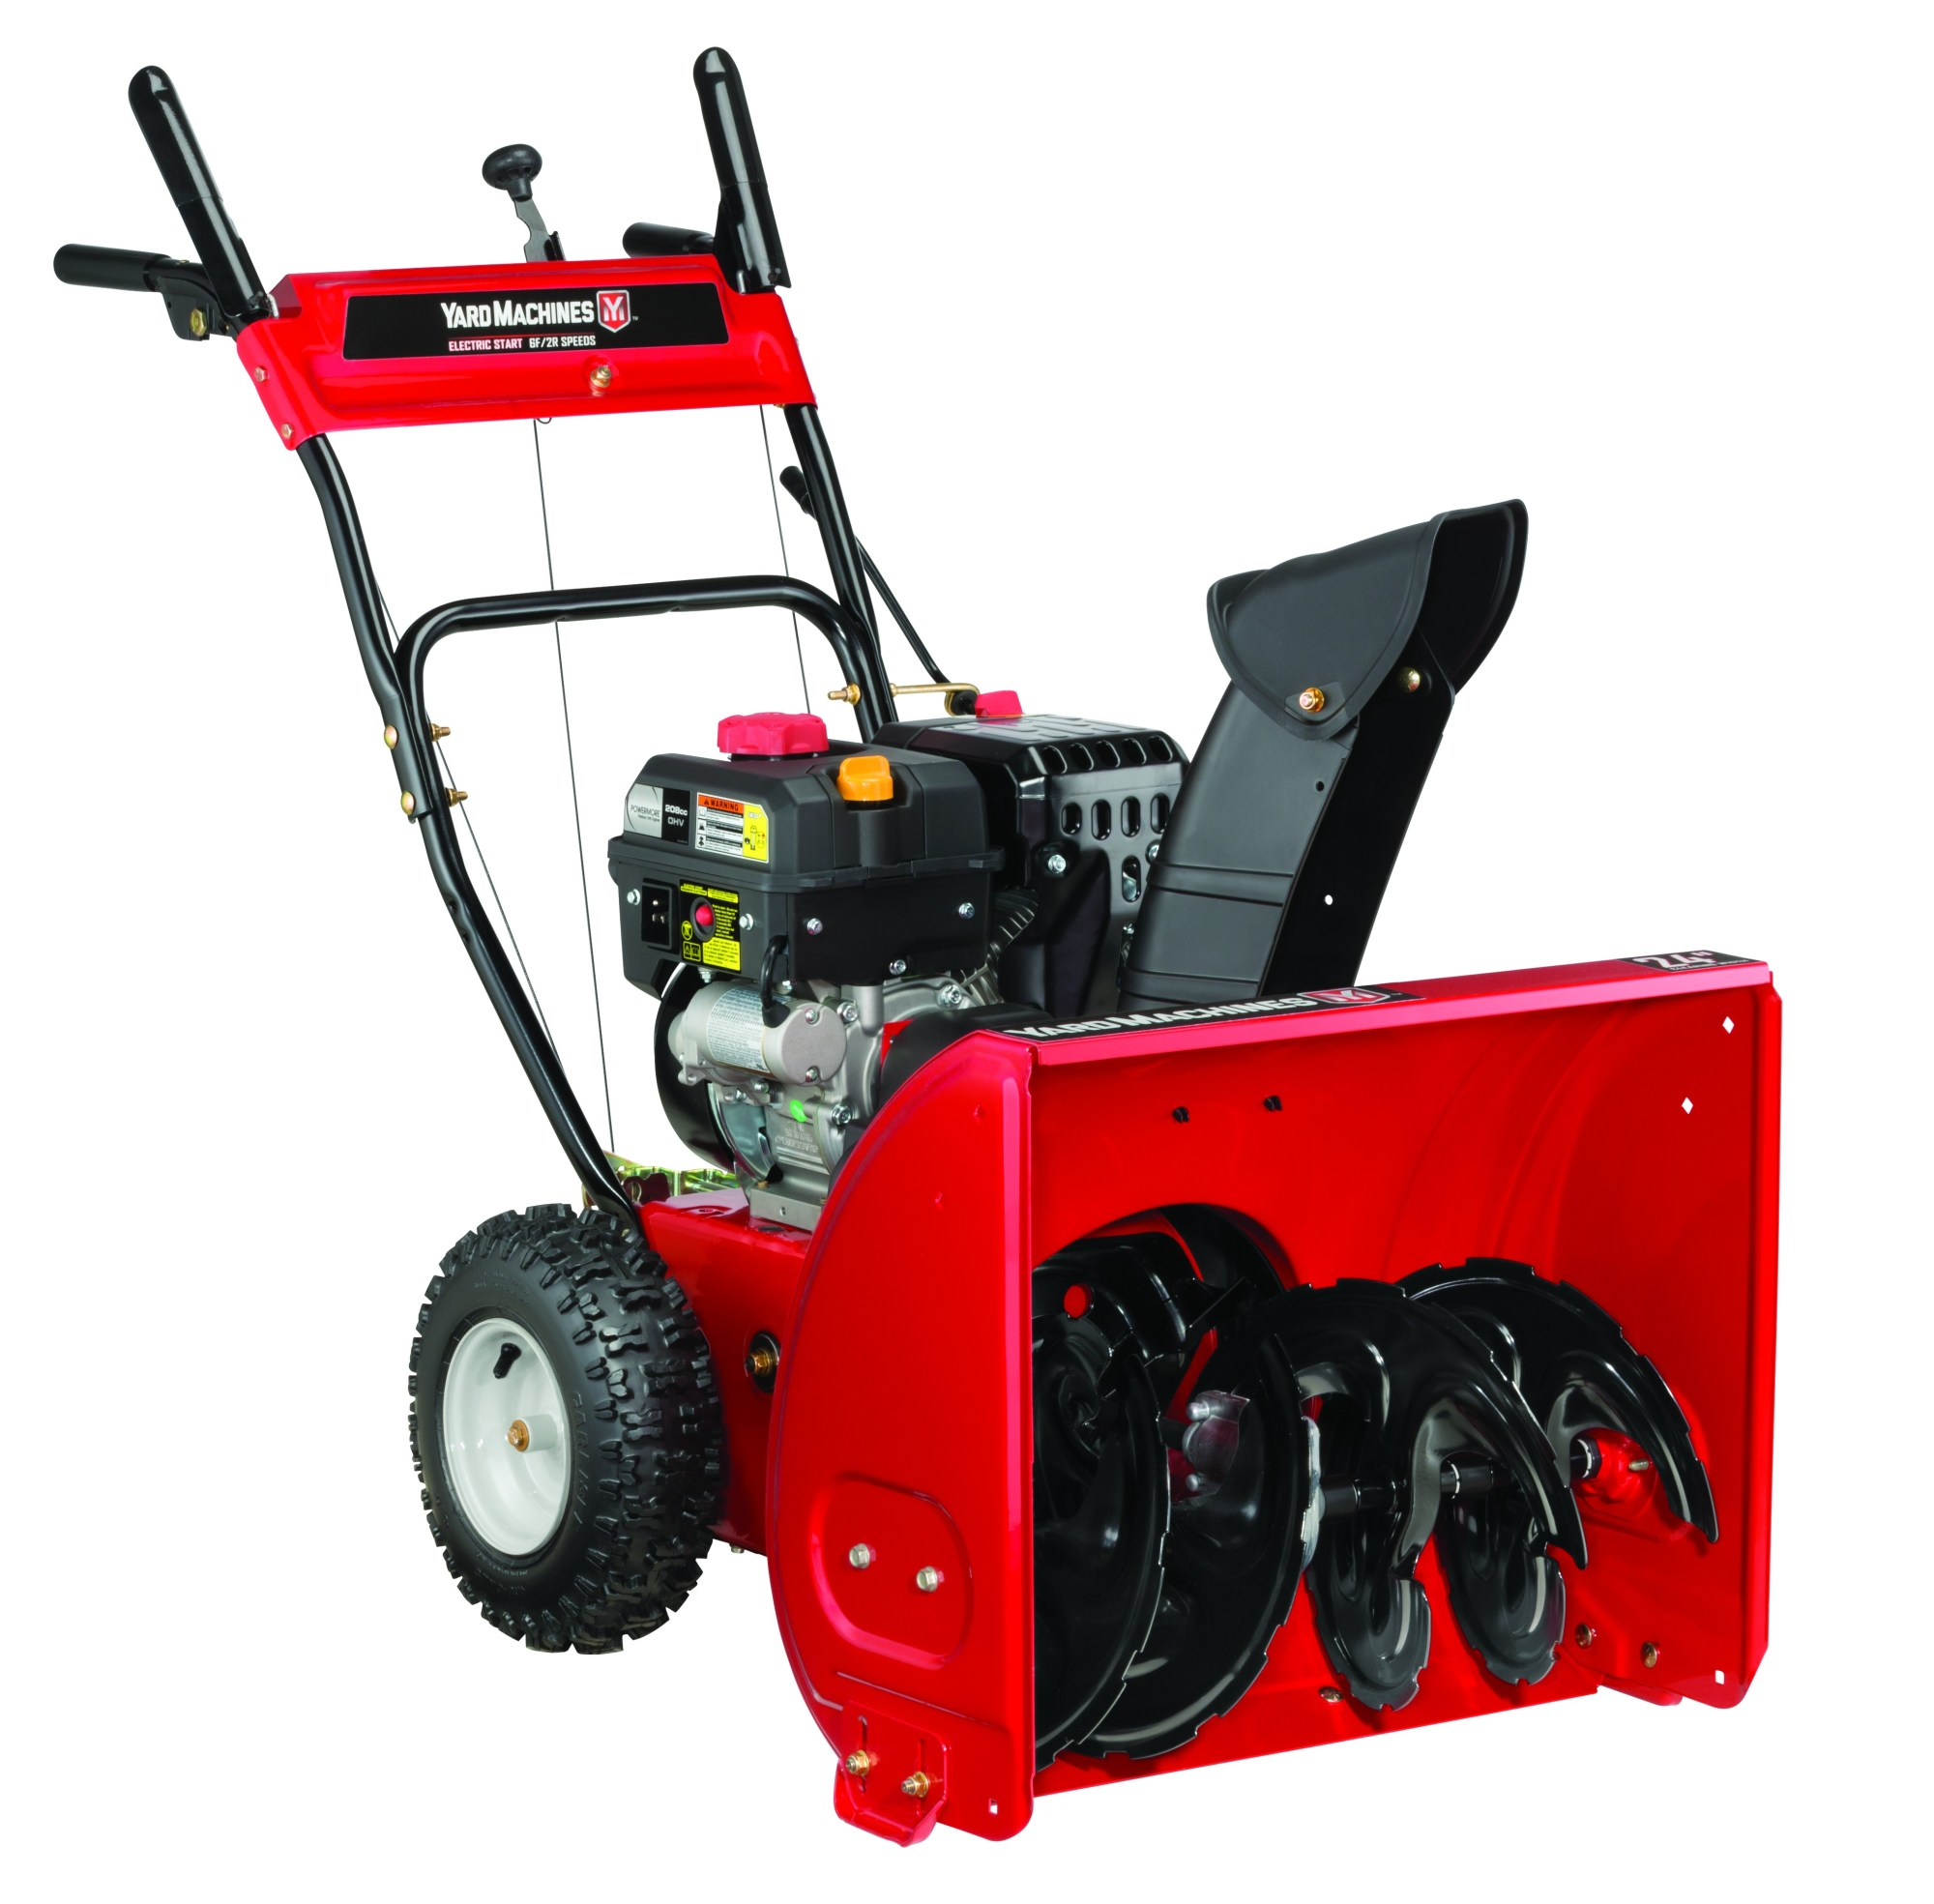 hight resolution of yard machines 24 two stage snow blower with electric start walmart com